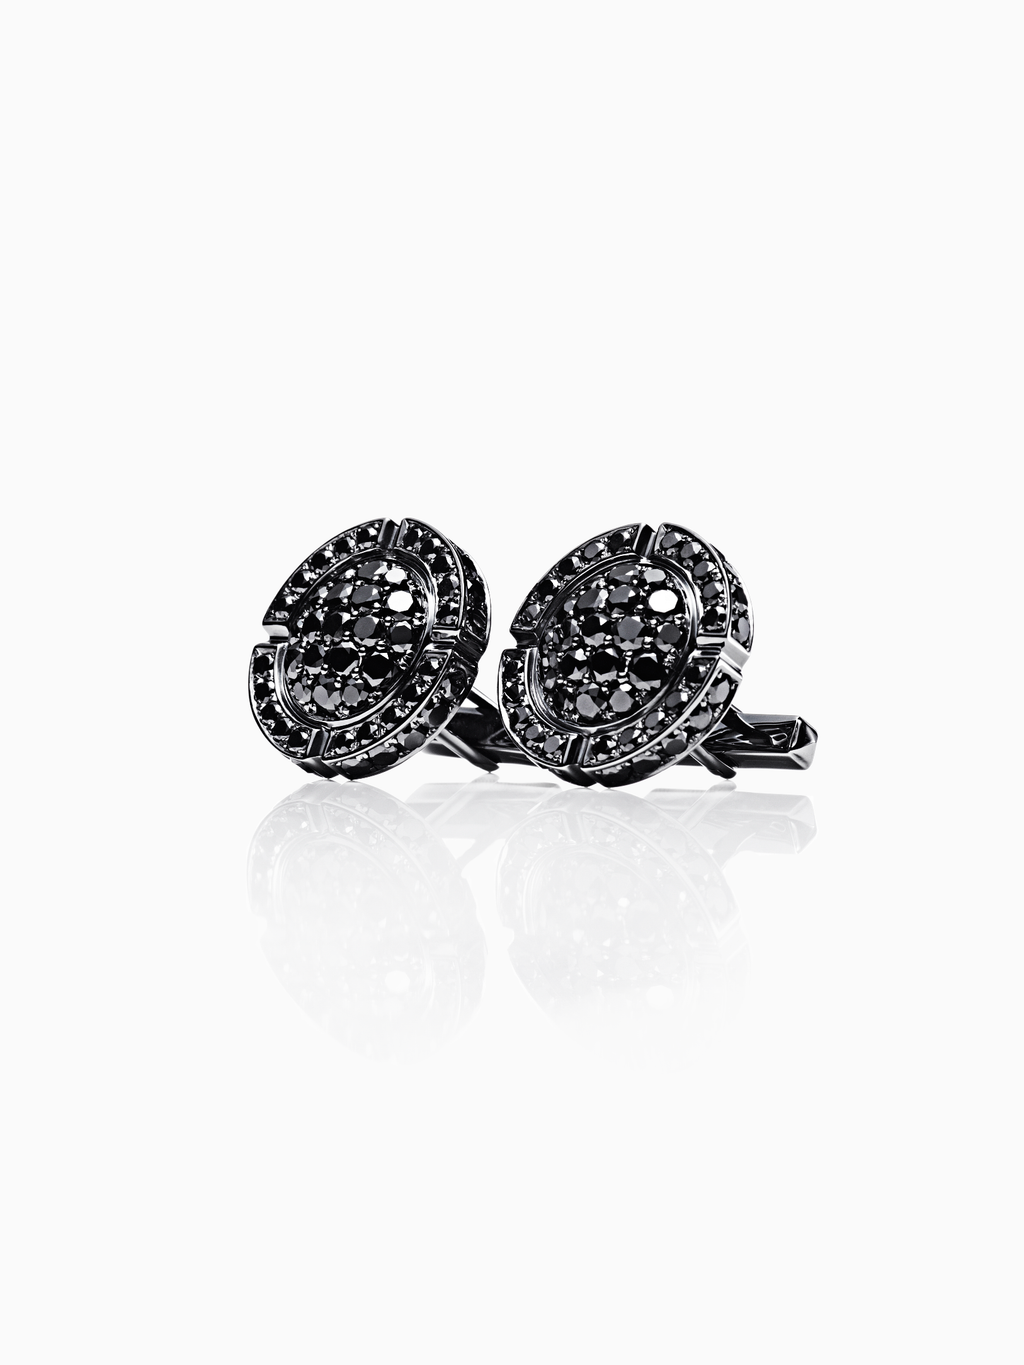 ADRASTEA | CUFFLINKS | DIAMOND | SILVER